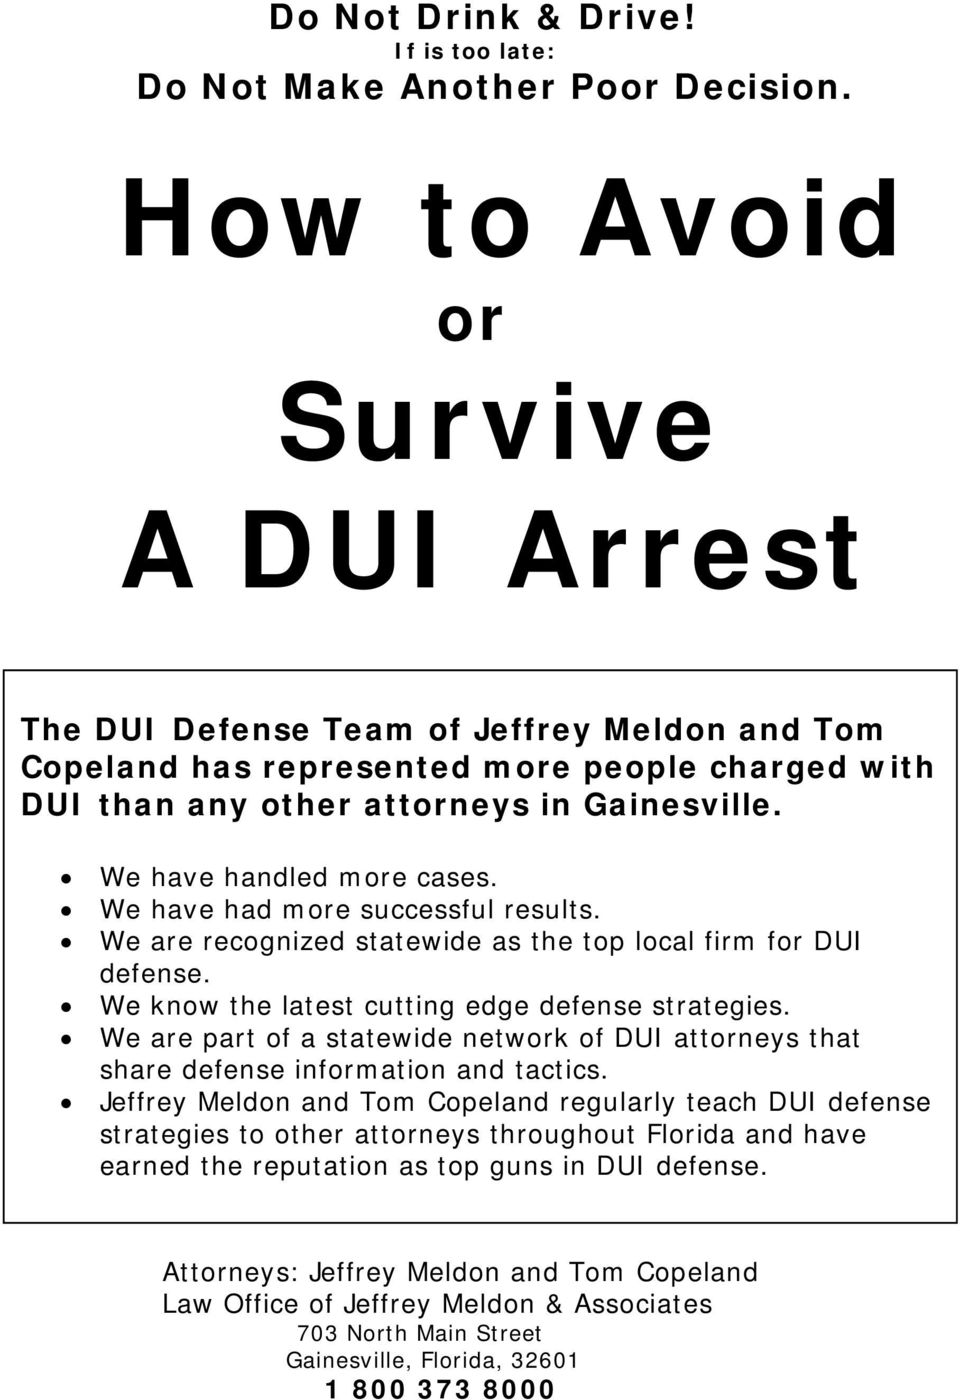 We have handled more cases. We have had more successful results. We are recognized statewide as the top local firm for DUI defense. We know the latest cutting edge defense strategies.